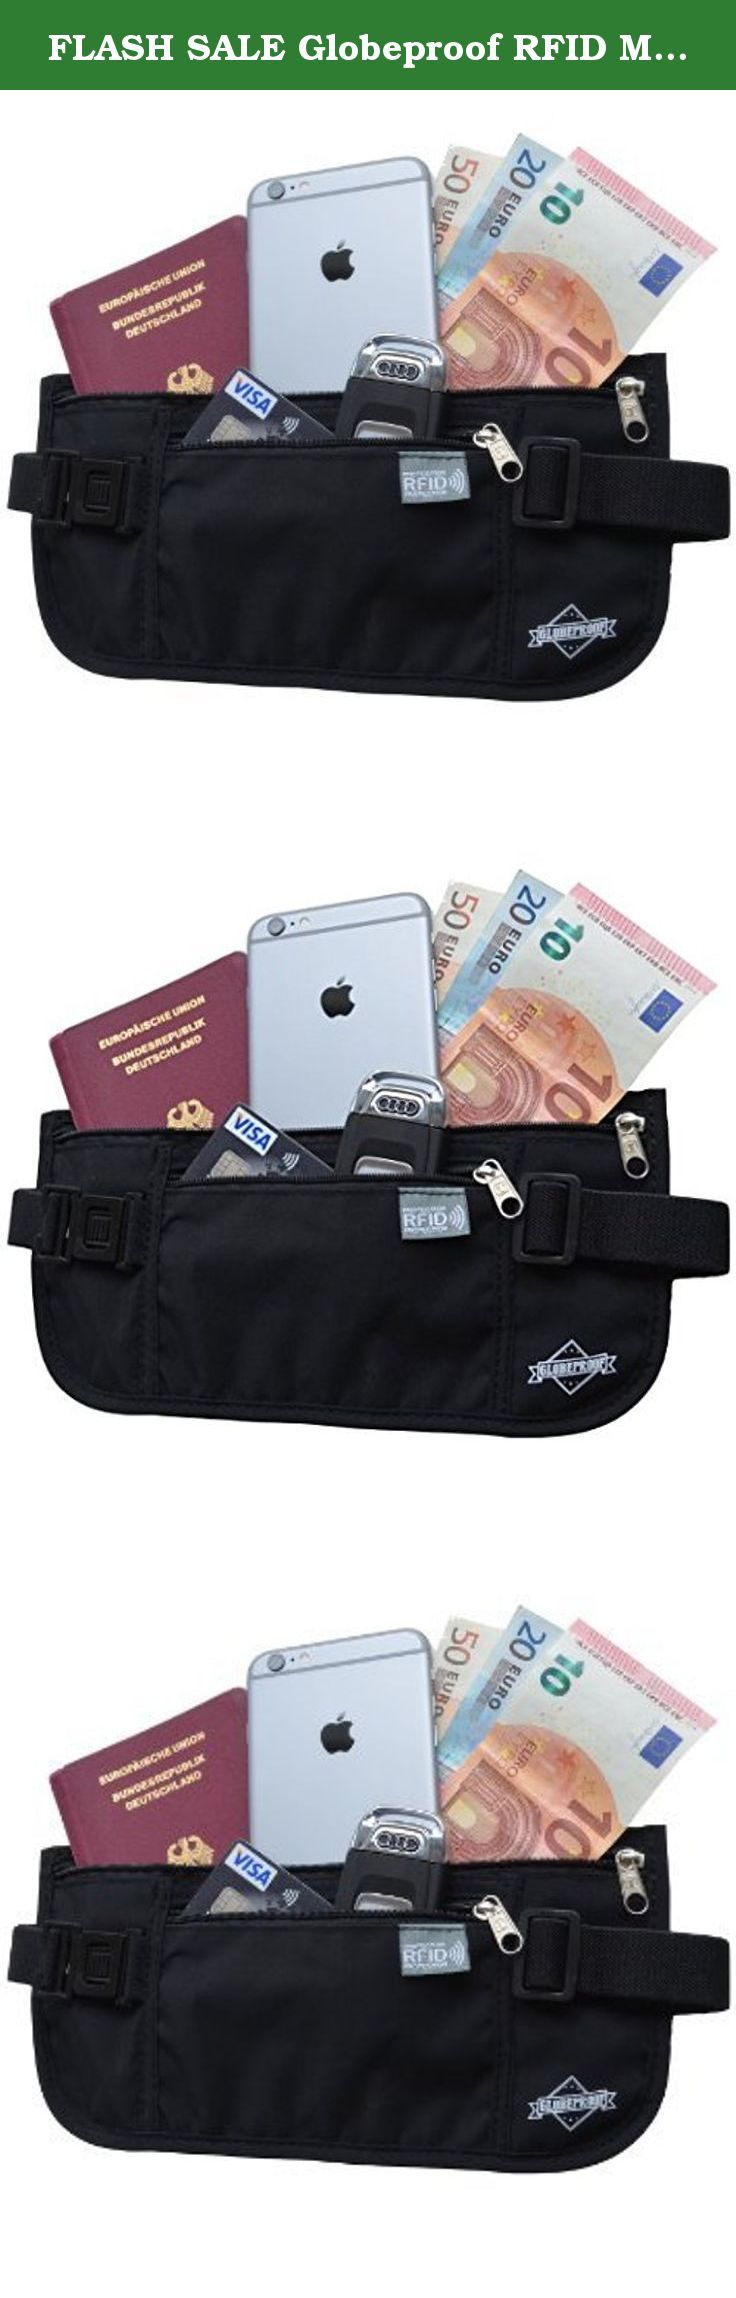 FLASH SALE Globeproof RFID Money Belt for Travel - Waist Stash / Fanny Pack / Hidden Wallet / Travel Pouch for Women & Men with Sturdy Buckle, Strong Zippers & Anti Identity Theft Protection!. The Globeproof Money Belt - Travel Safely! • Do you hate always checking for your valuables when traveling? • Are you sick of having your long awaited trips ruined by pickpockets? • Do you need a convenient yet safe way to carry your money in amusement parks, on hikes or runs? Introducing the...